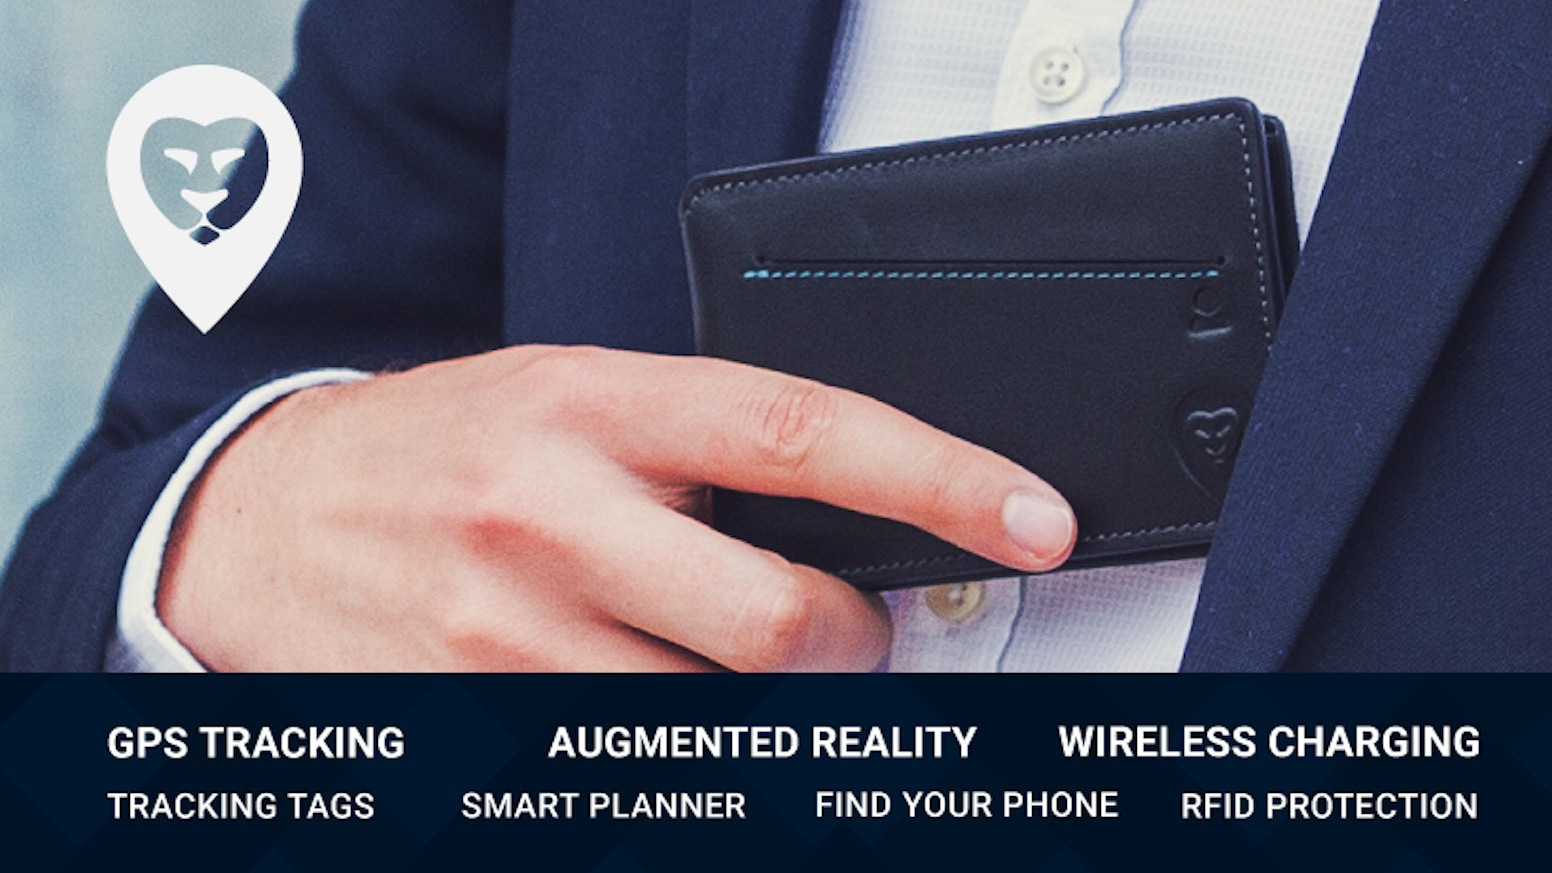 Wireless Phone Charging | Augmented Reality | Real Time Global GPS Tracking | Tracking Tags for All Valuables | Smart Planner | RFID